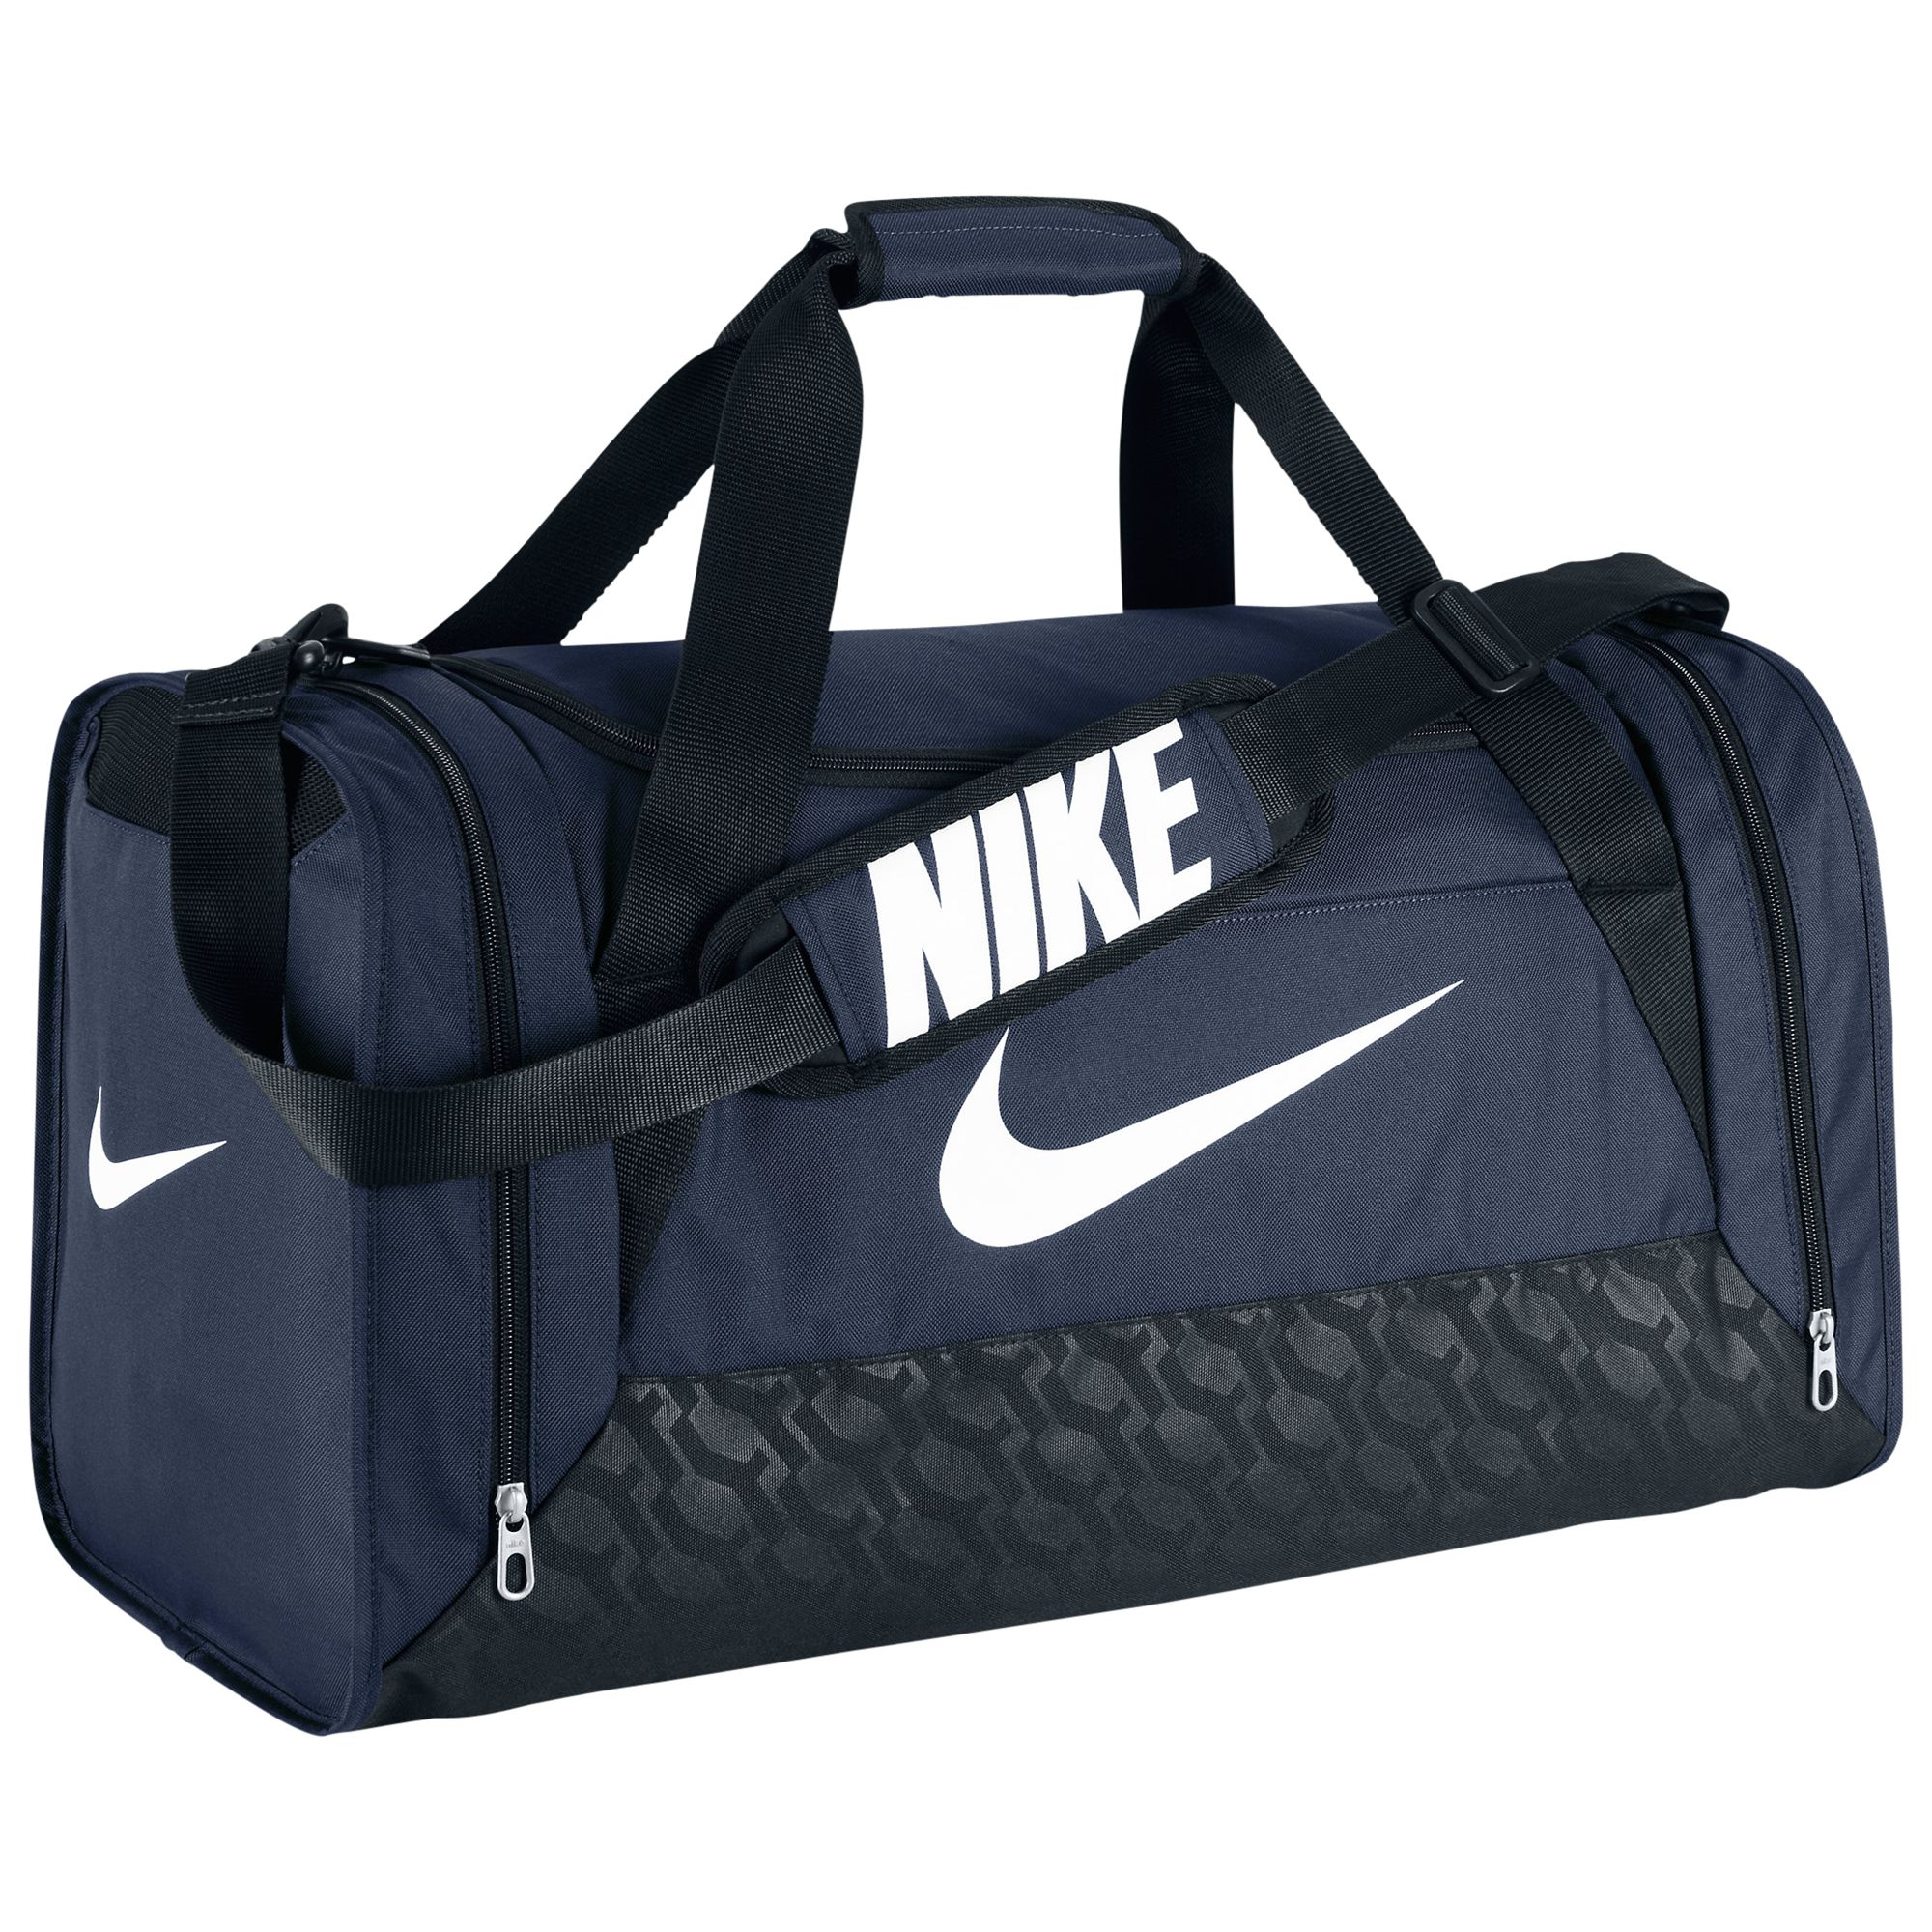 625380d6f69 Nike Brasilia 6 Medium Duffle Bag